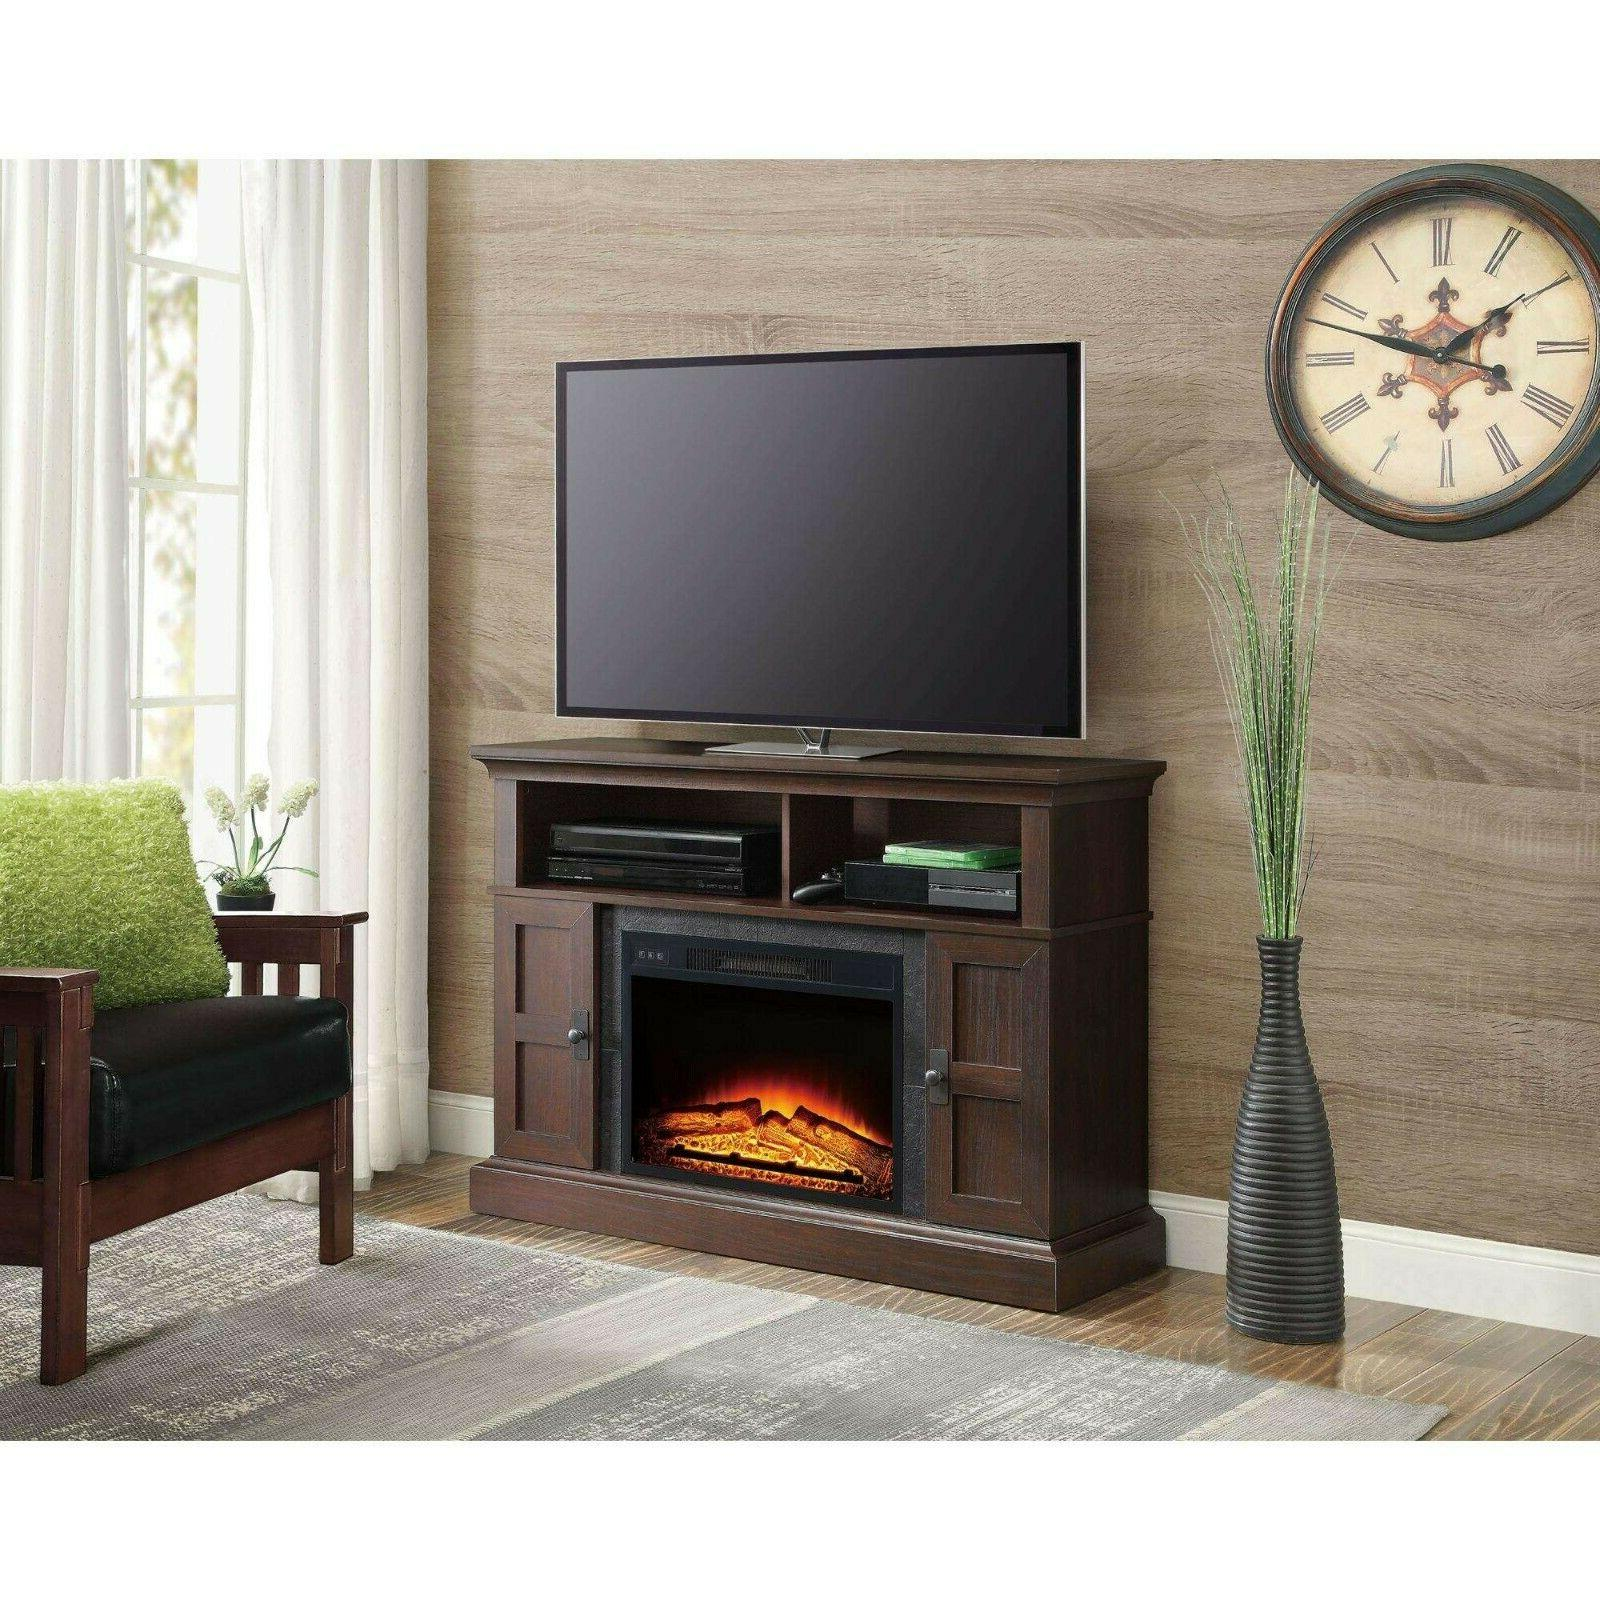 TV Electric Fireplace Heater Control Cherry